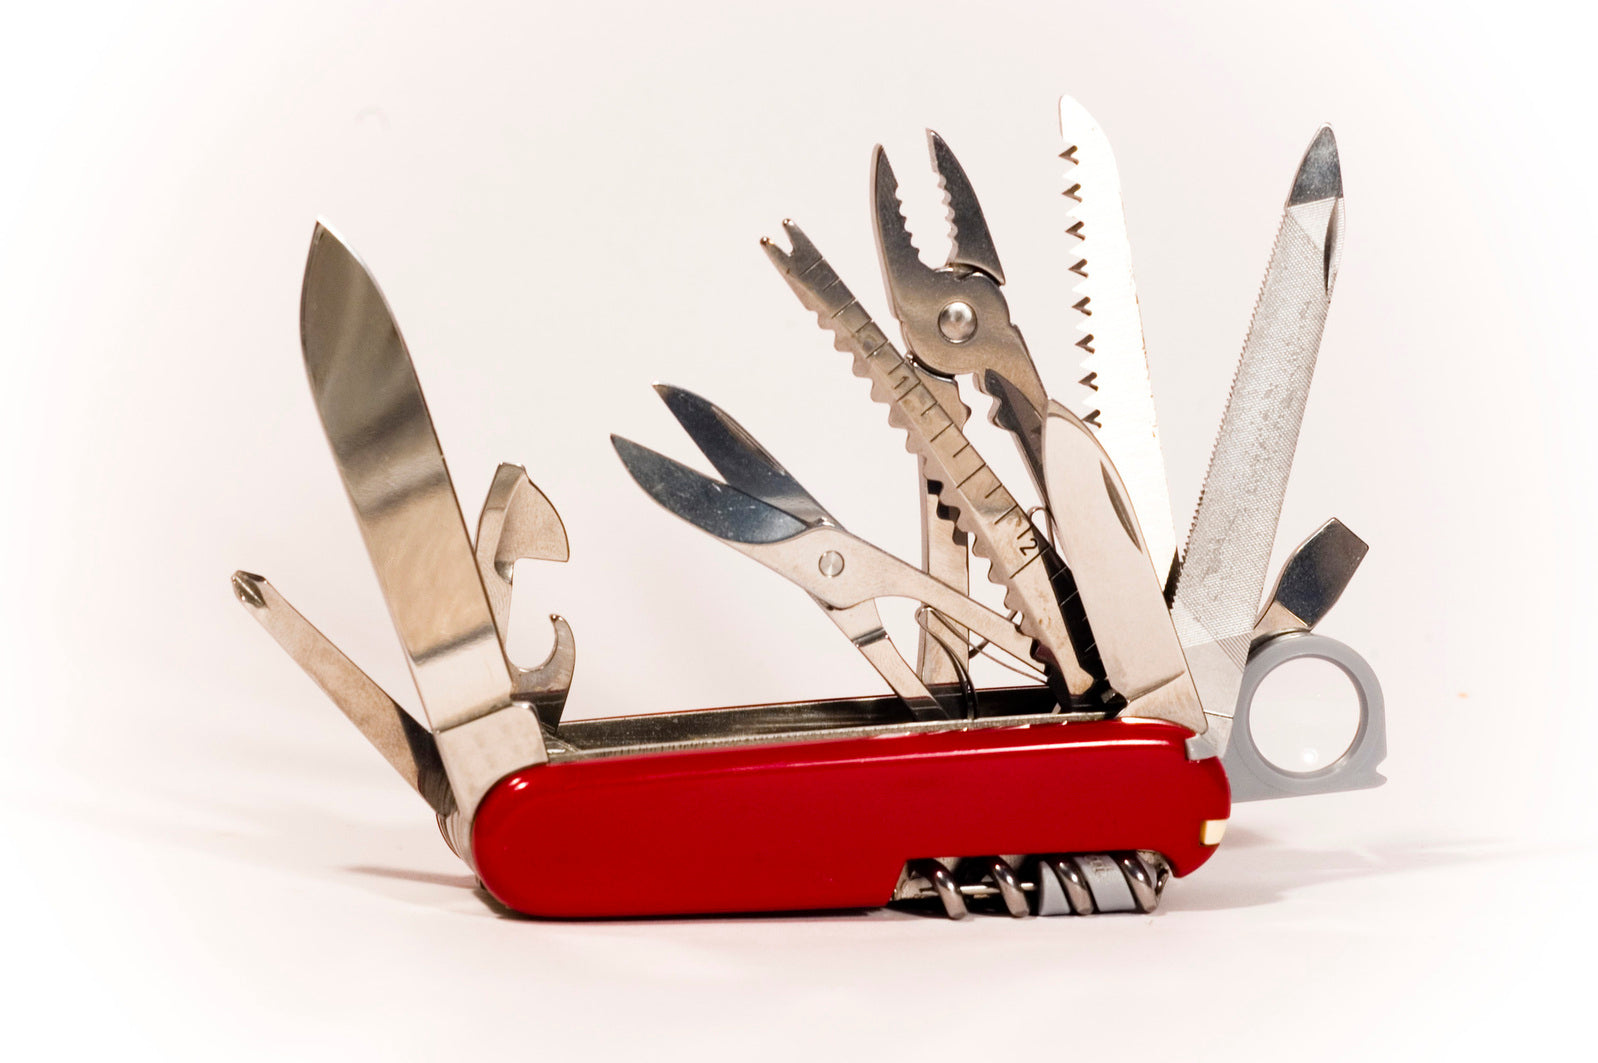 Repair Kit and Tools are Number 7 on the 10 Essentials List